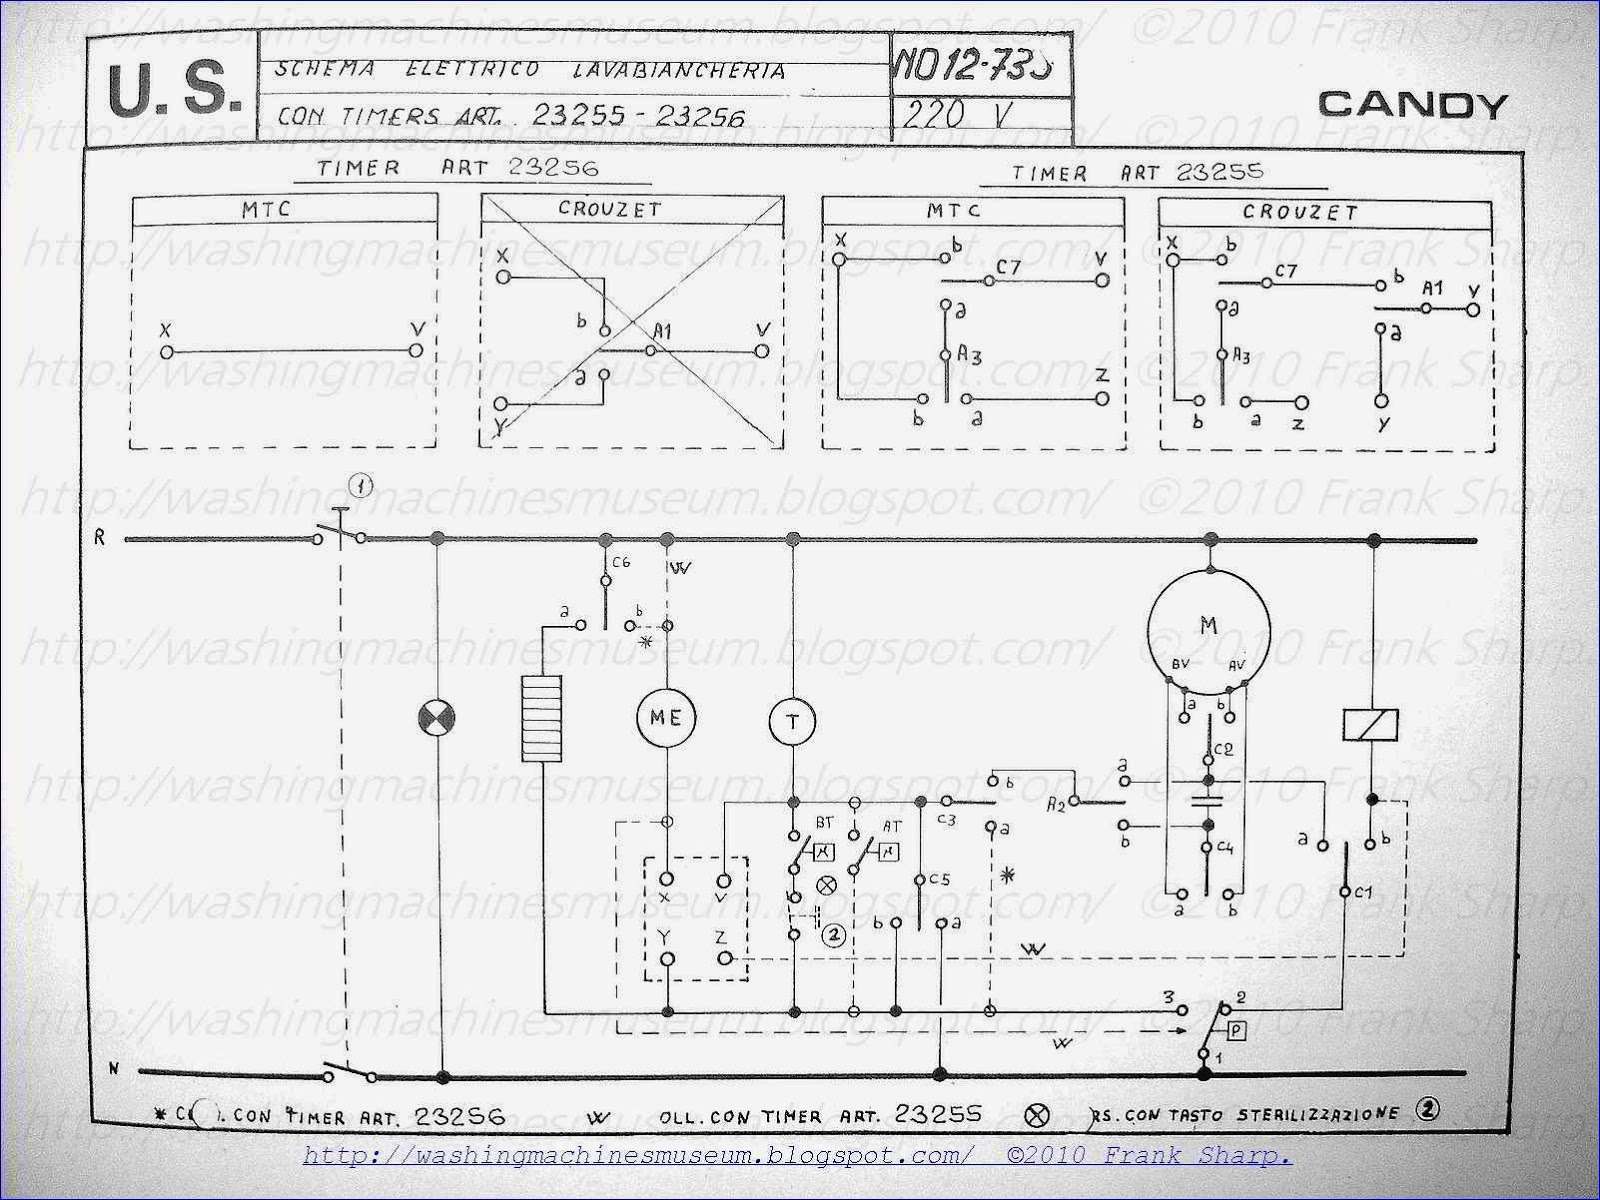 Maytag Oven Wiring Diagram Trusted Schematics For Dacor Washer Timer Somurich Com Stove